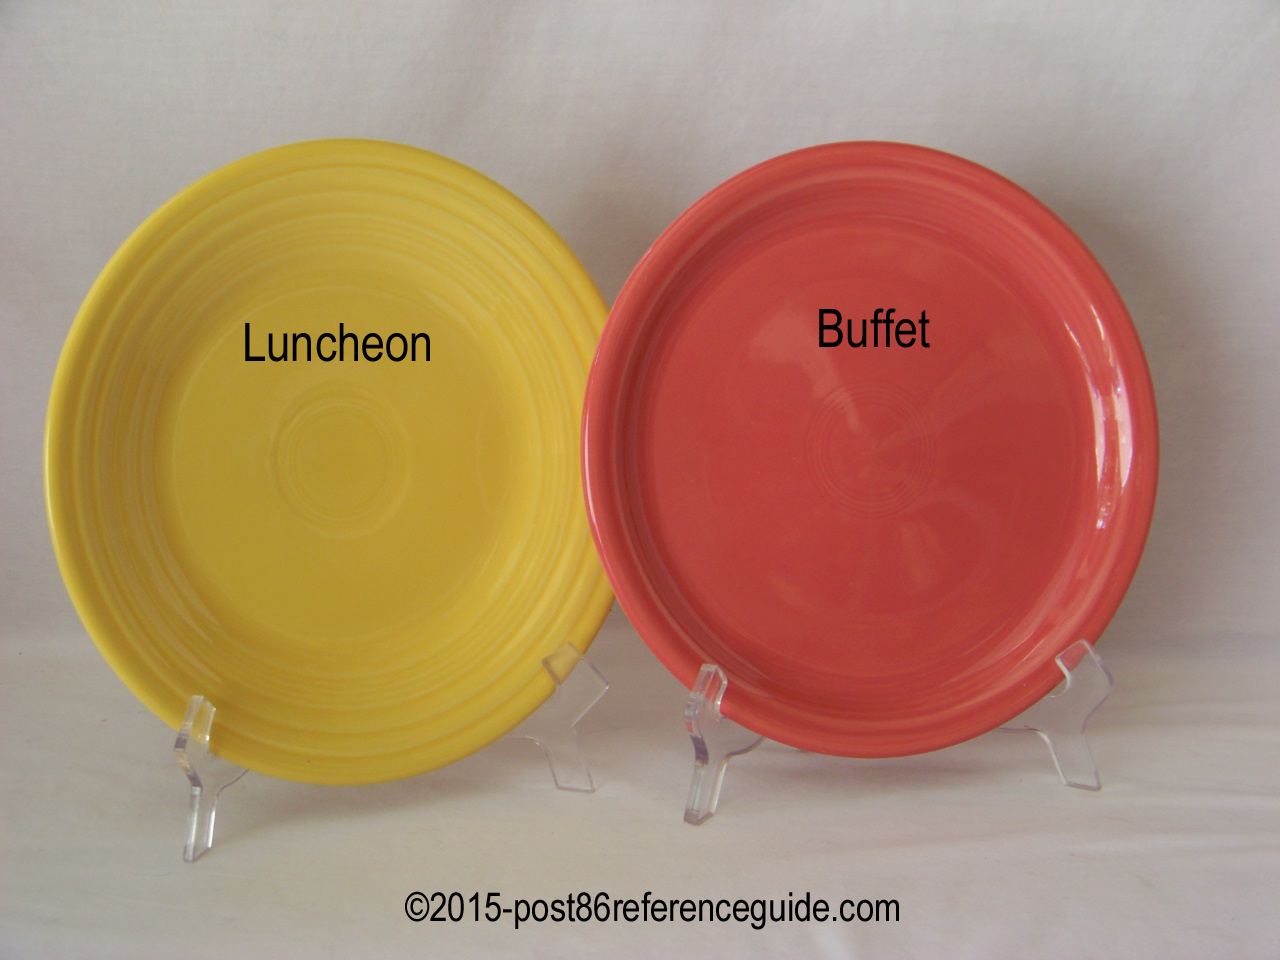 Fiesta® Luncheon Buffet Plate Comparison & Comparison - Plates - Platters - Trays - Post 86 Reference Guide